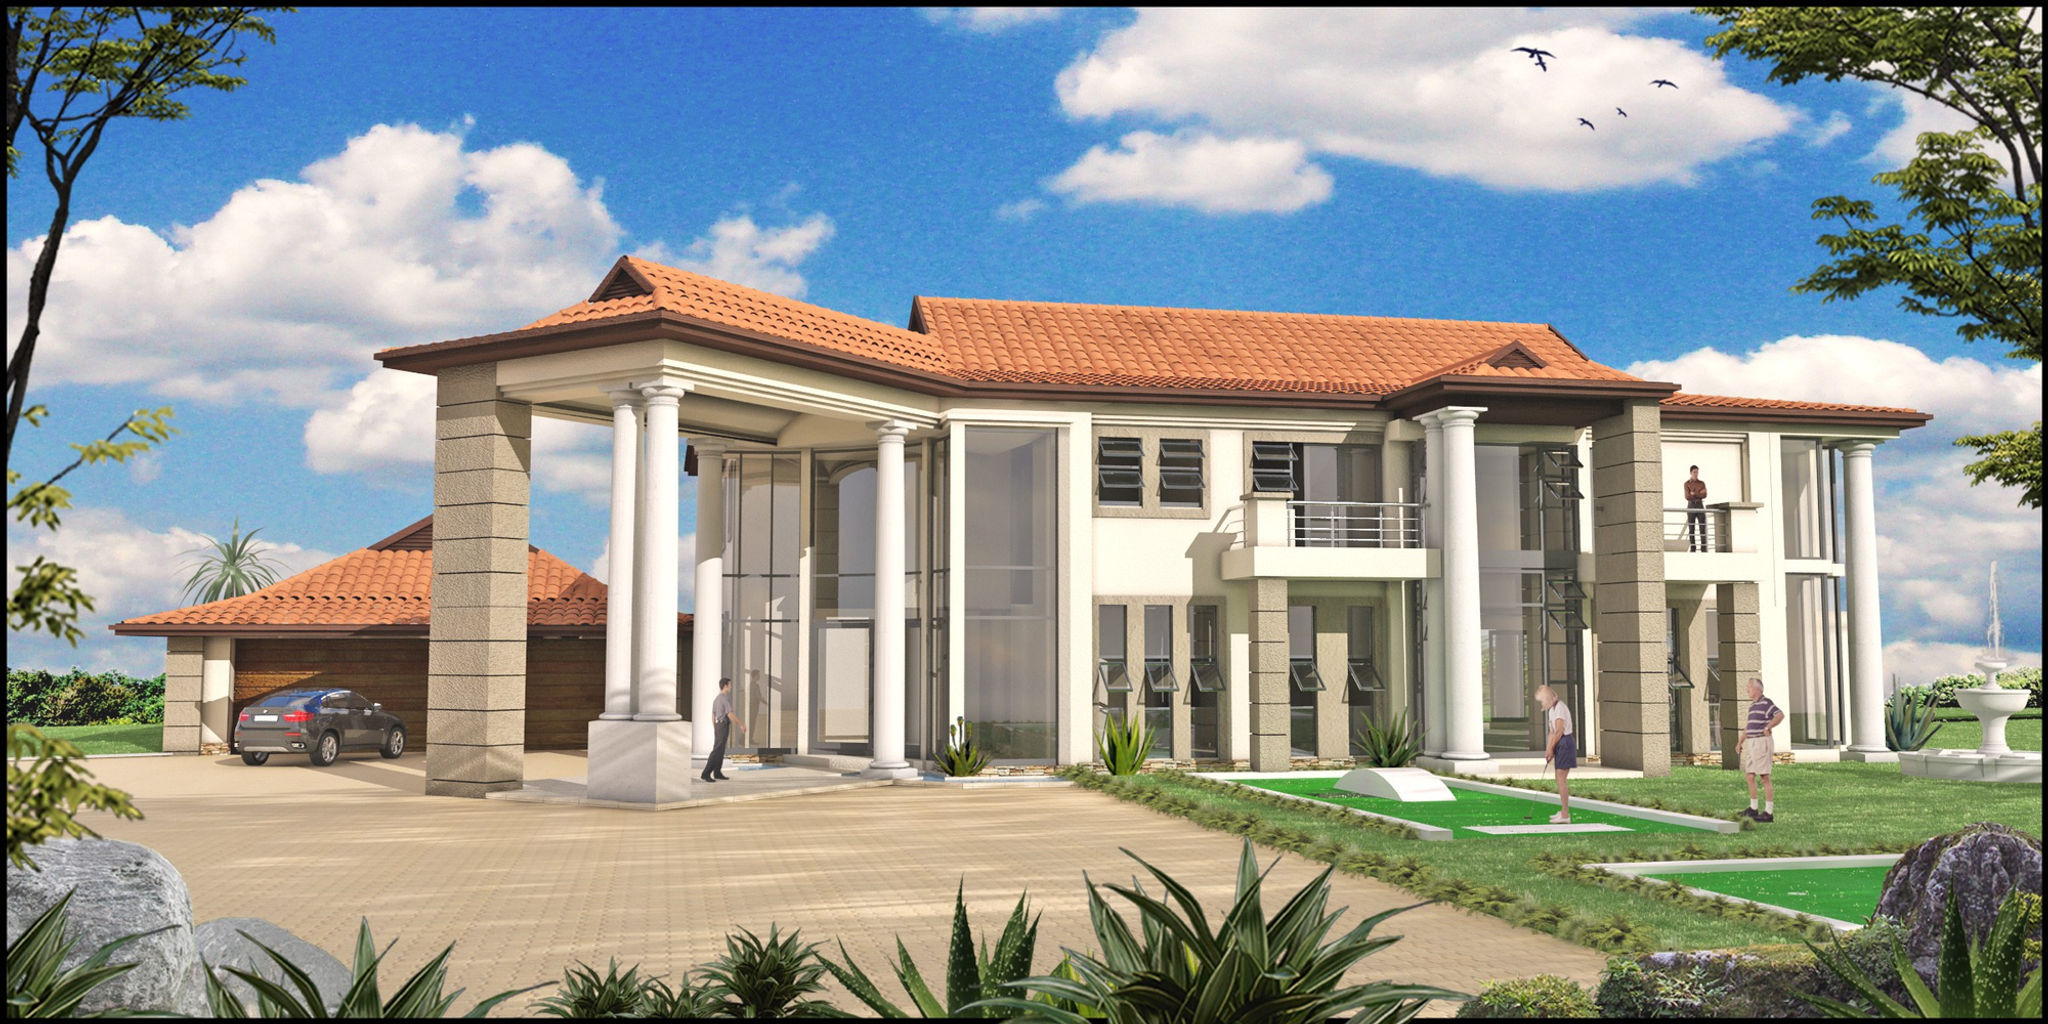 South African House Plans House Plans And Design House Plans South Africa For Sale